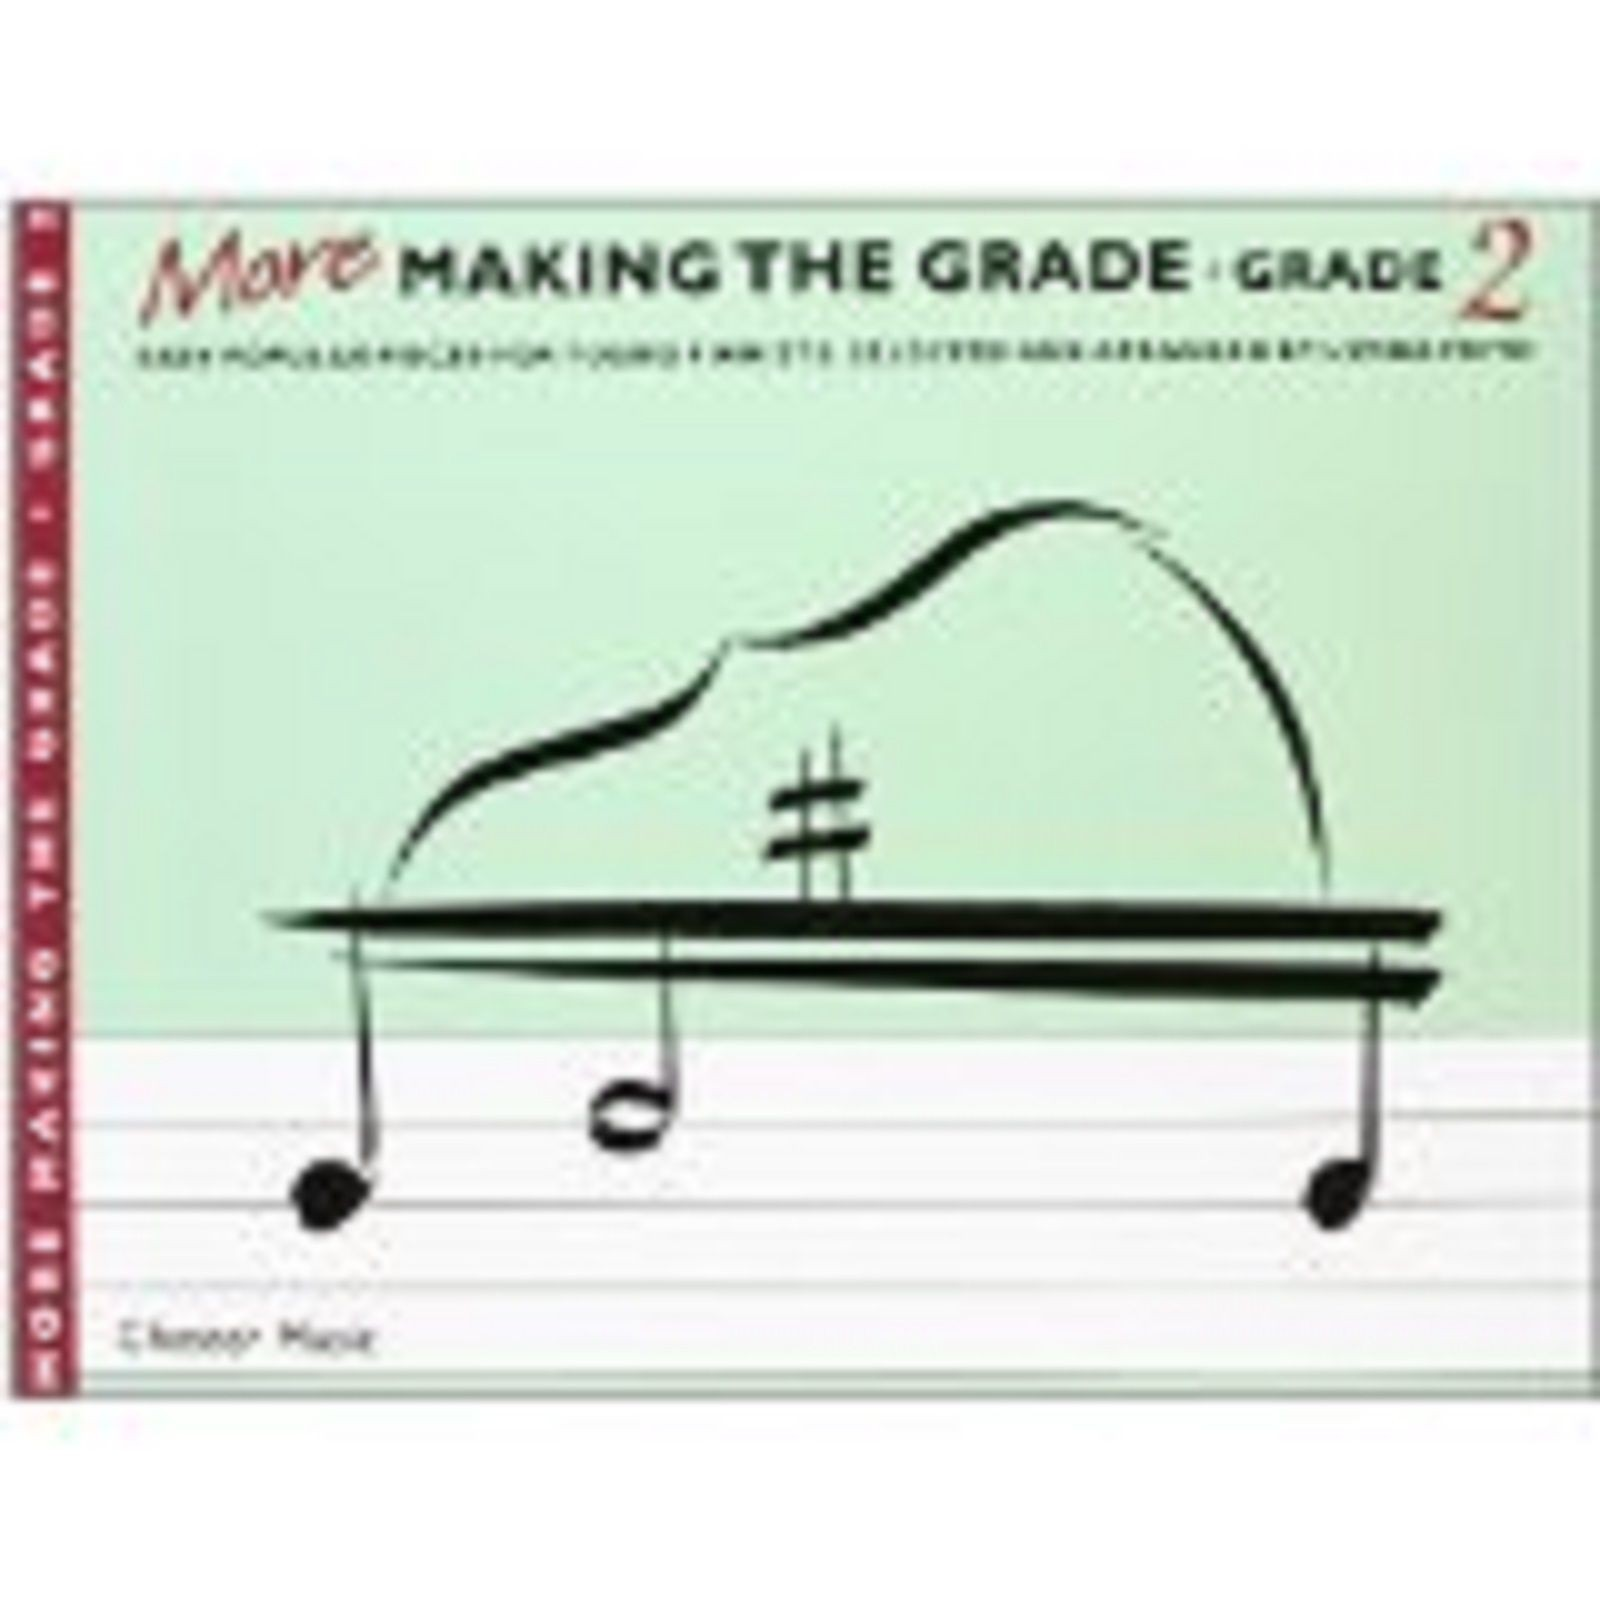 More Making The Grade Grade Two Piano Sheet Music Book Easy Popular Pieces S62